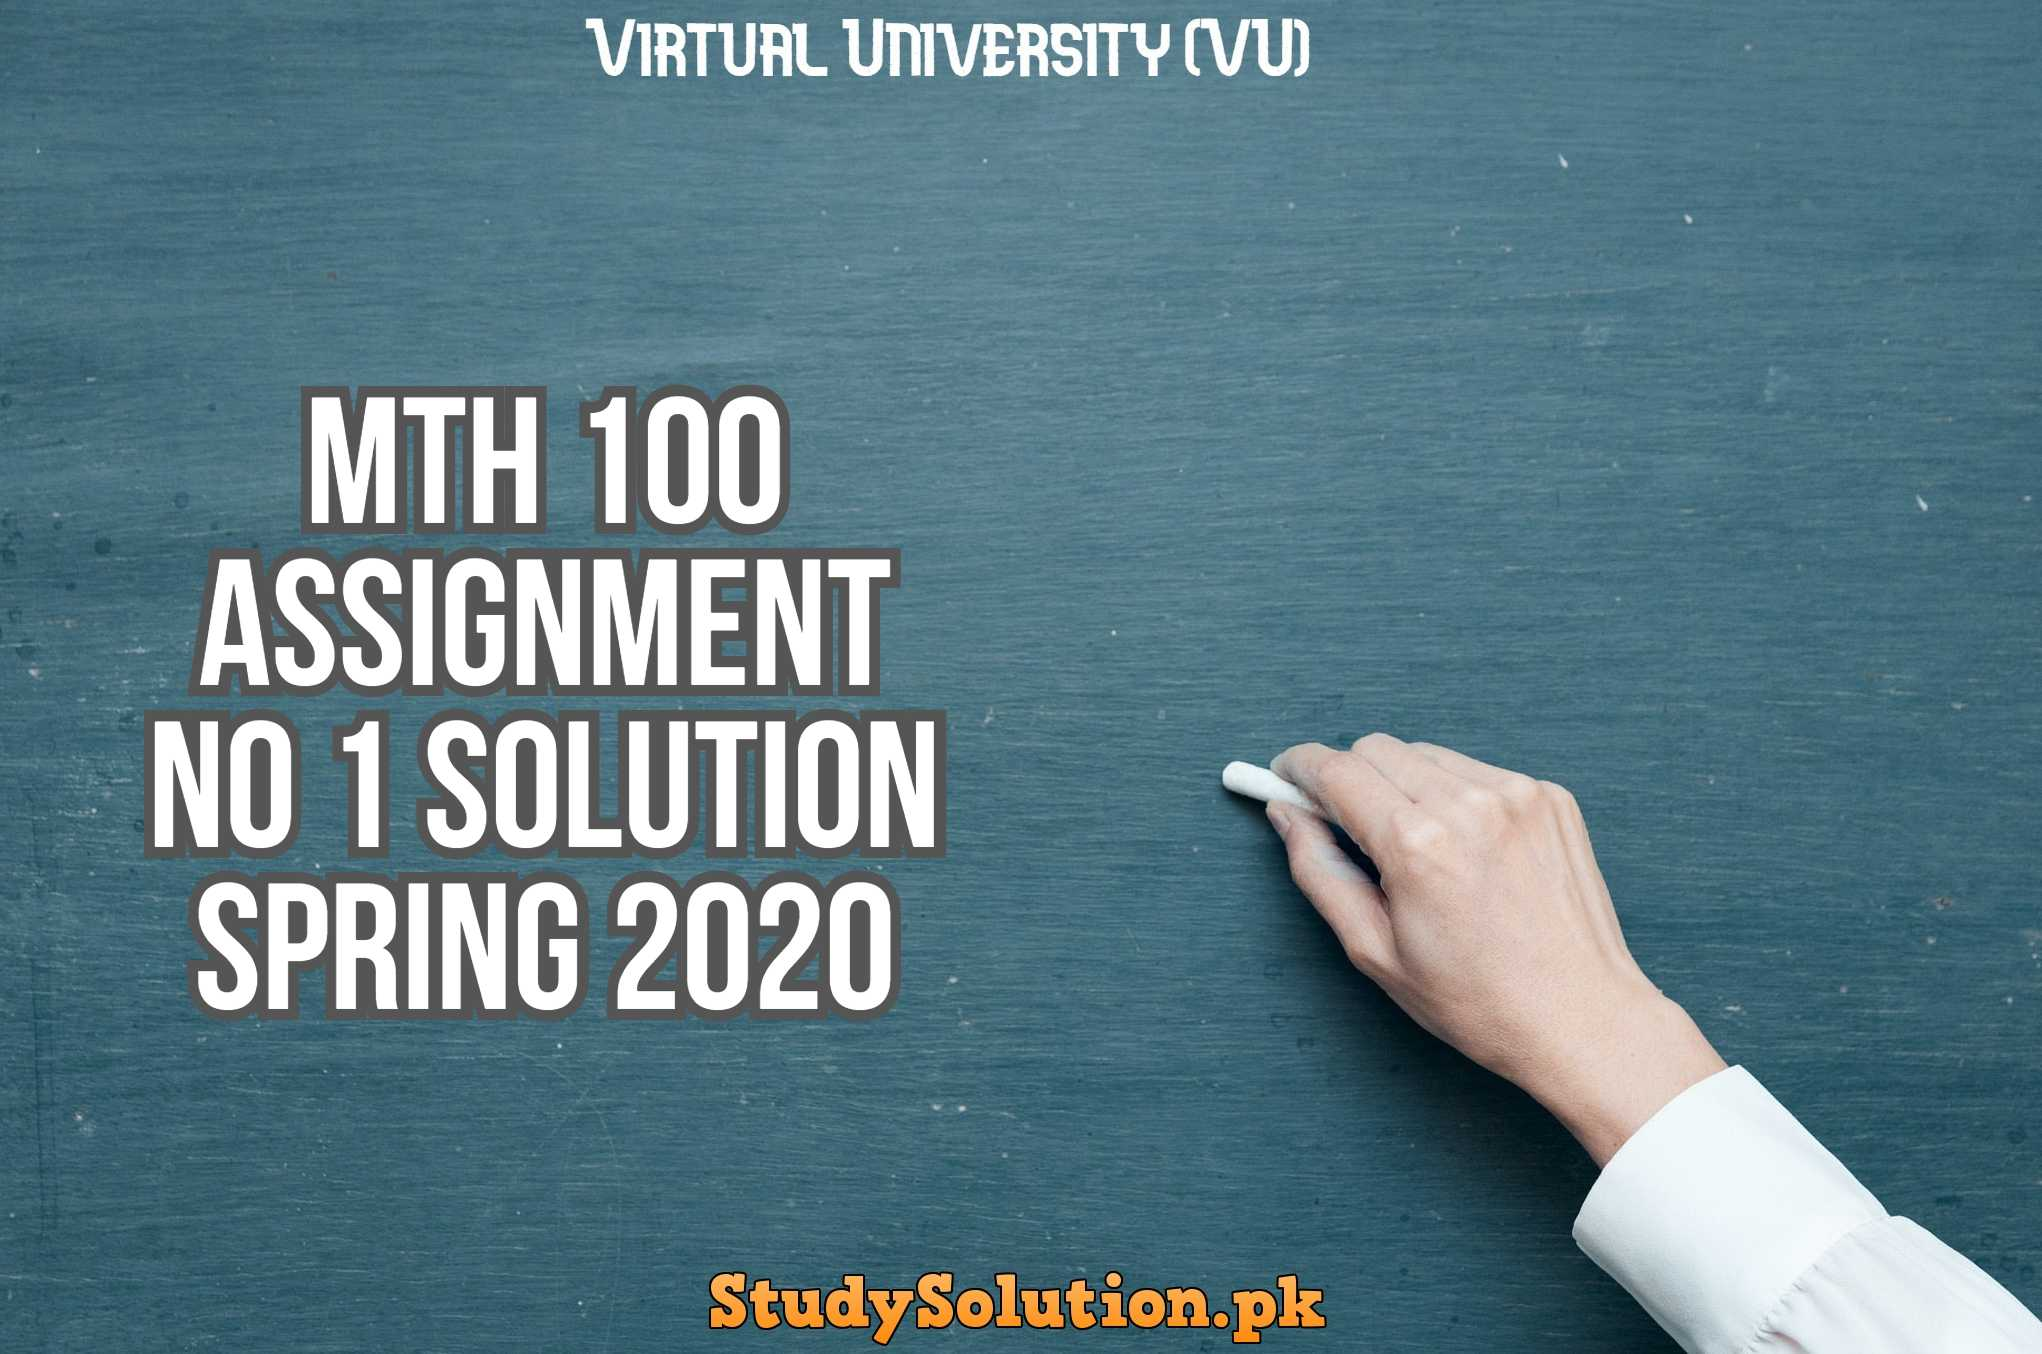 MTH 100 Assignment No 1 Solution Spring 2020